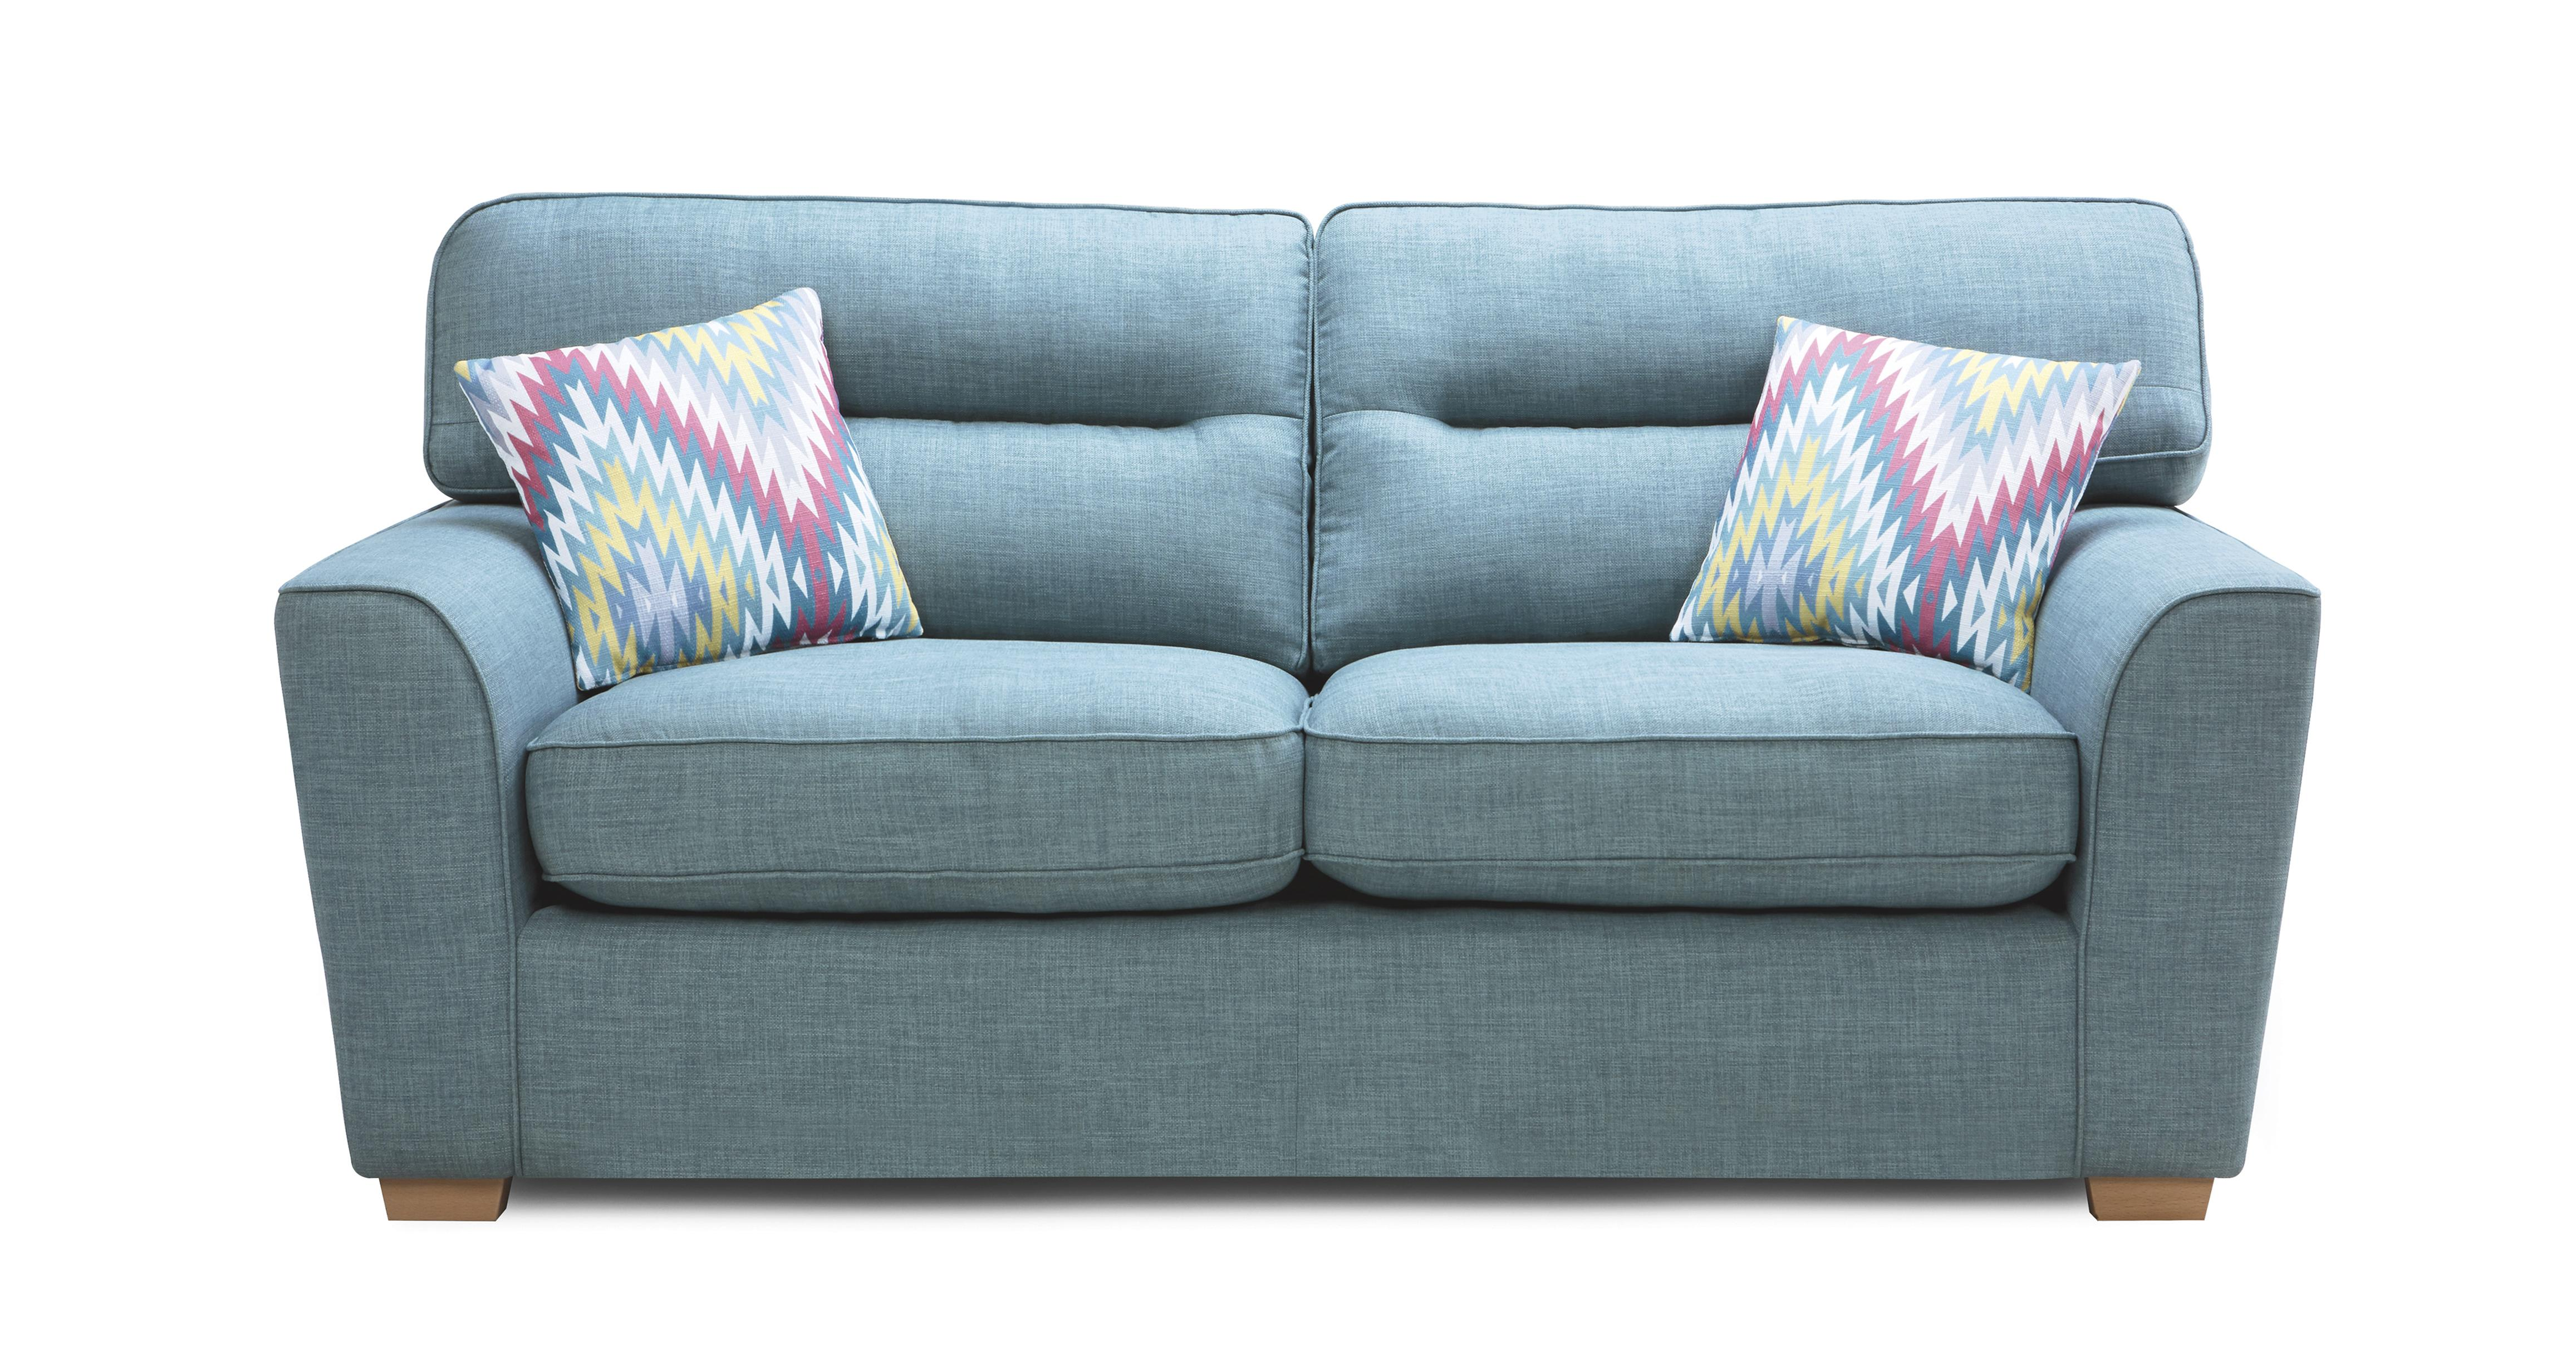 dfs french connection quartz sofa review glider fabric sofas spain all